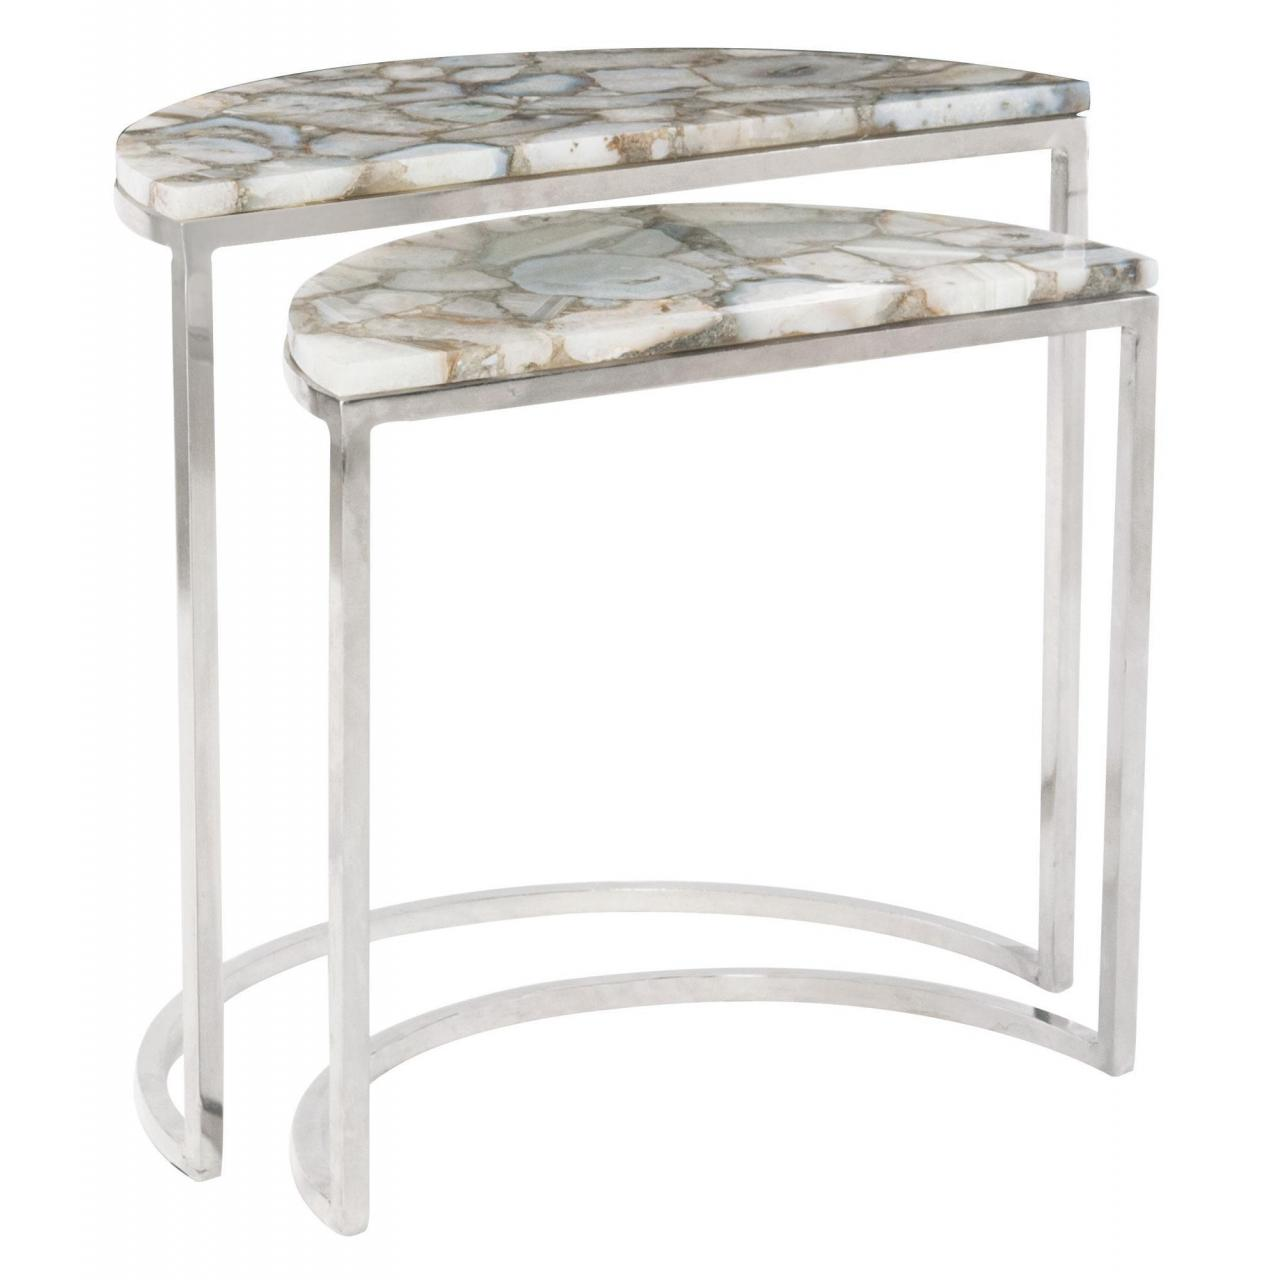 Buy cheap Benitez Nesting Tables New product